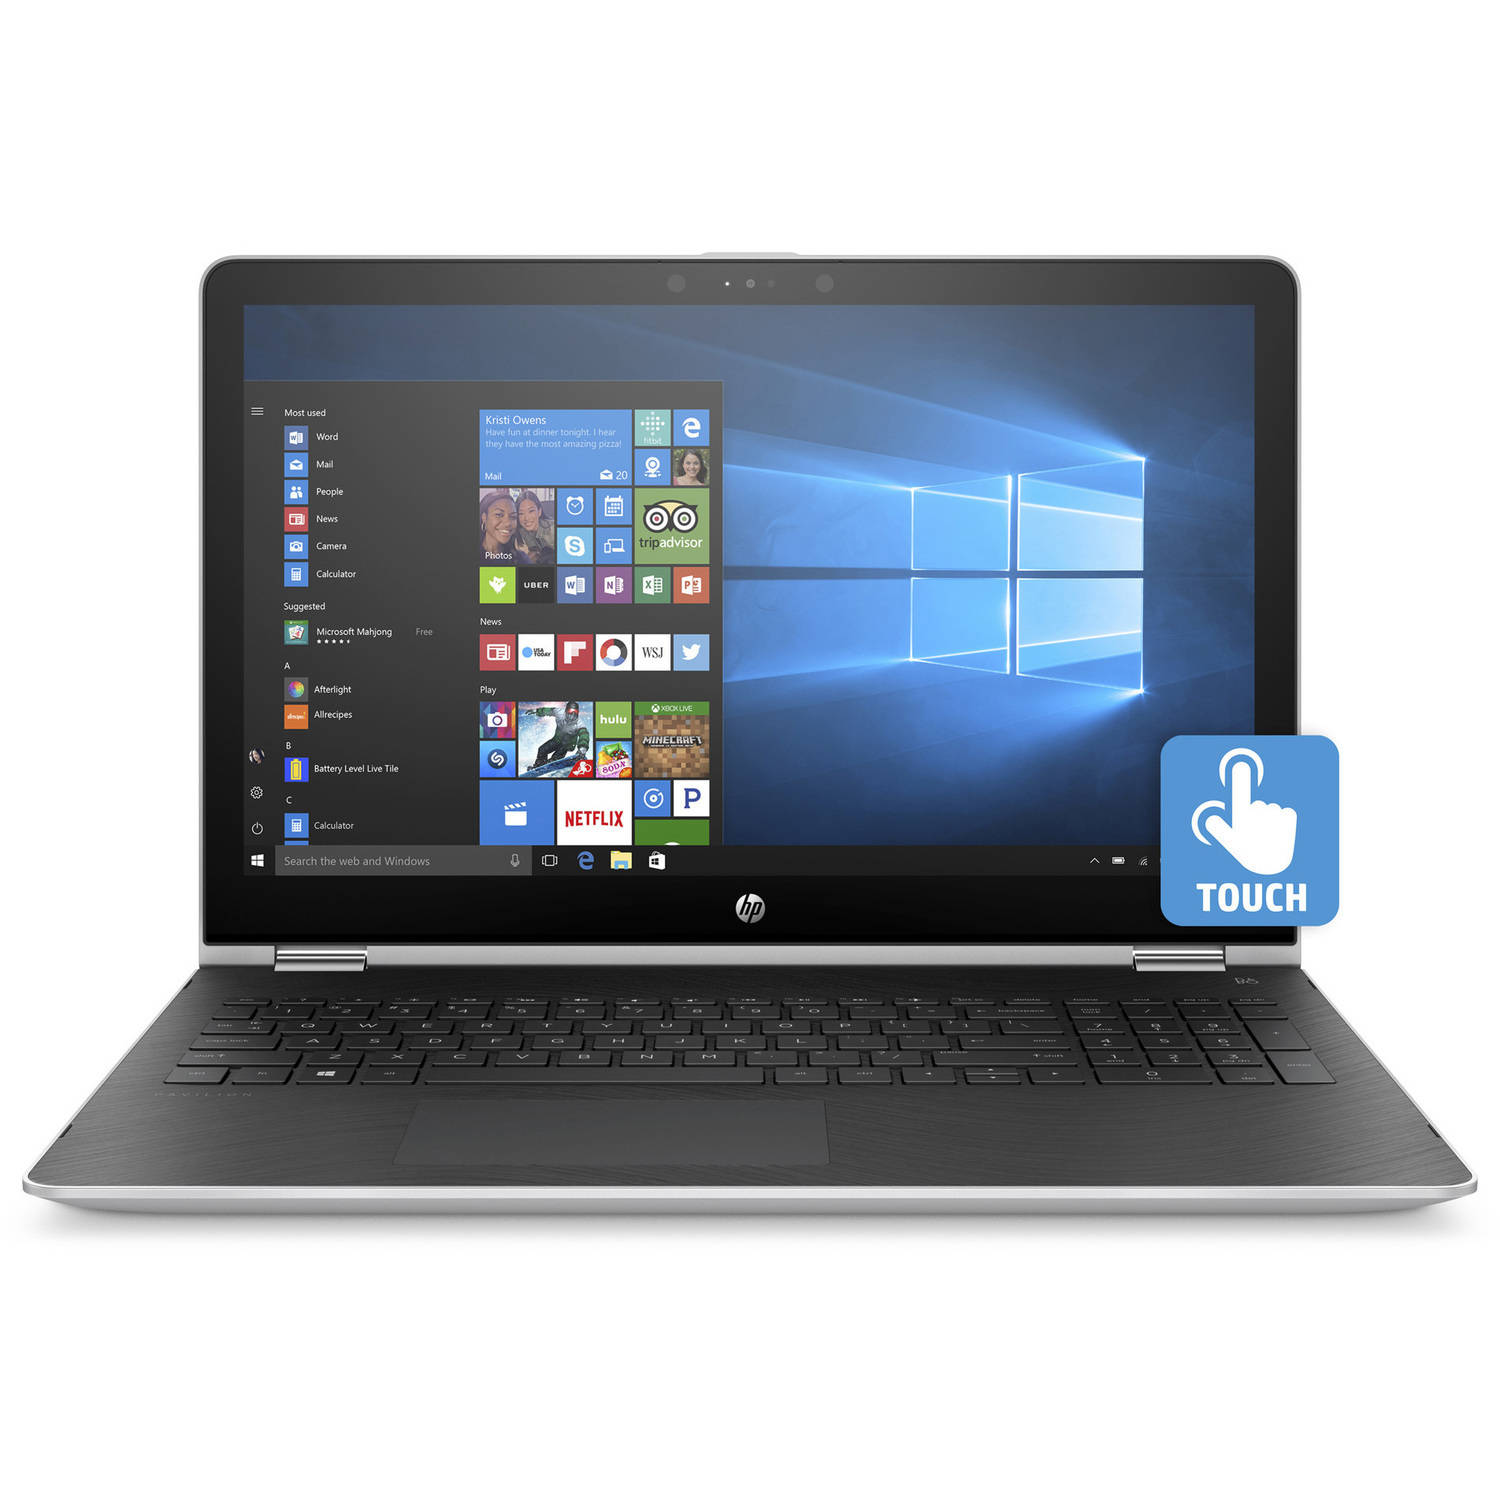 "HP 15.6"" Laptop, Touchscreen, 2-in-1, Windows 10, Intel Core i3-7100U Processor, 8GB RAM, 1TB Hard Drive (Assorted Color)"